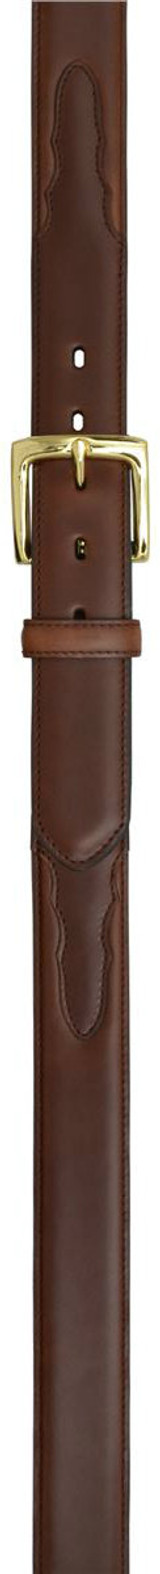 Men's 3D Belt, Solid Brown, Gold Buckle